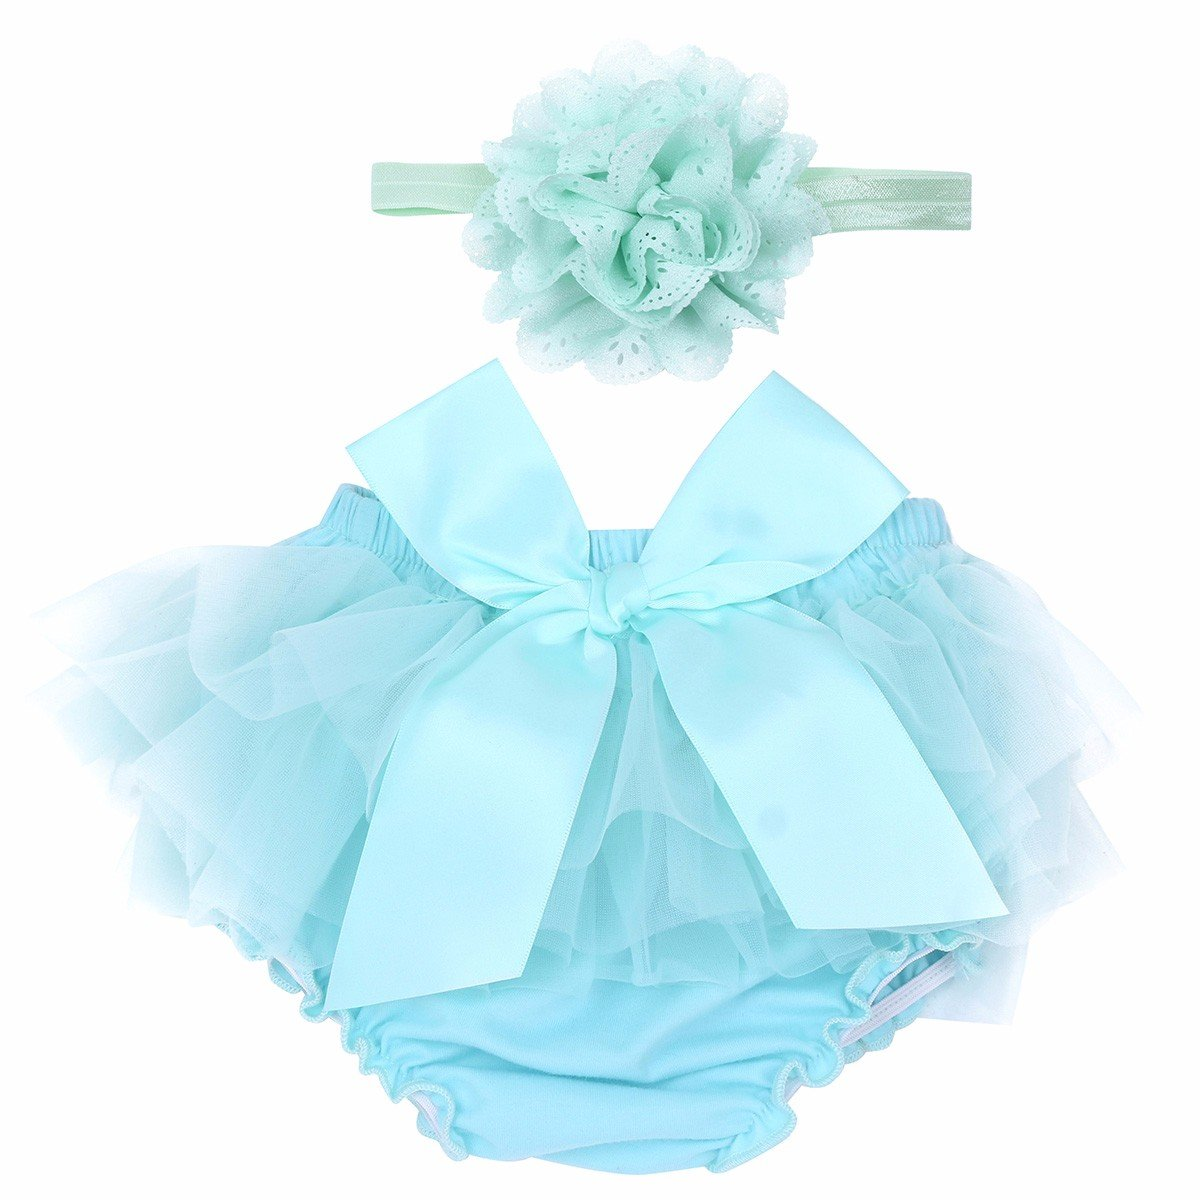 FEESHOW Infant Baby Girls Bow-Knot Tulle Ruffle Bloomers Shorts Diaper Cover with Flower Headband Set Photography Outfit